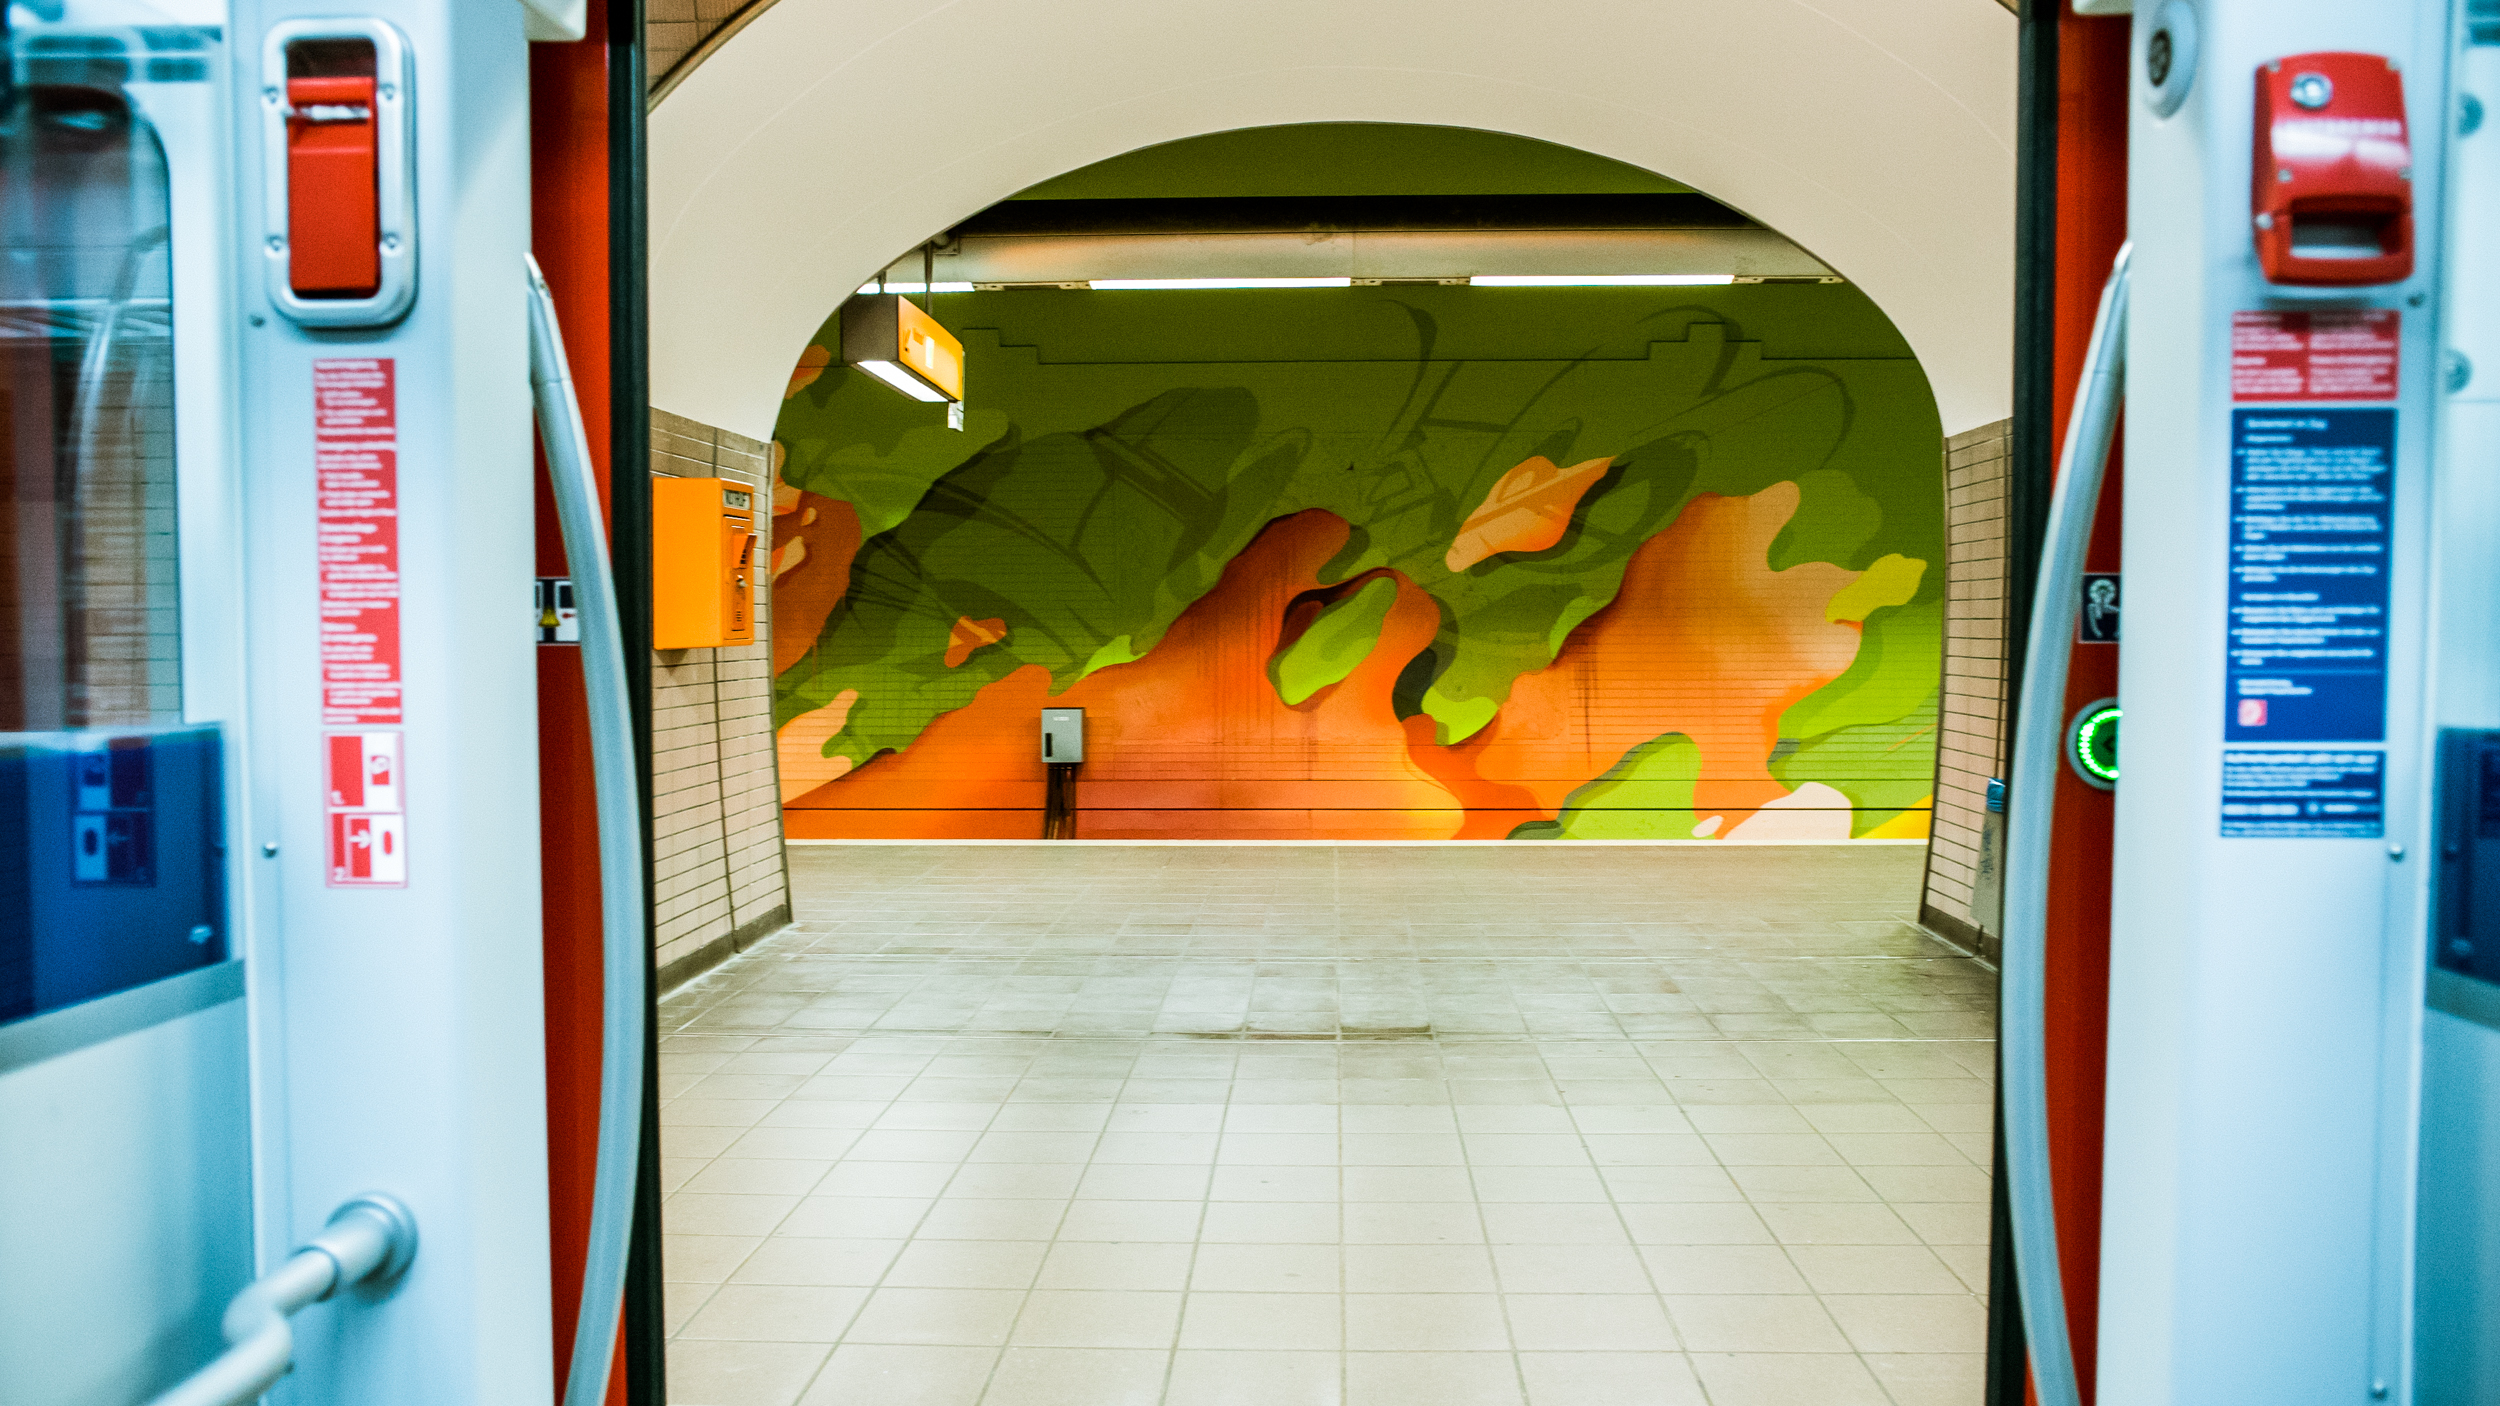 A work by Does - Ostendstrasse frankfurt germany tunnel 19